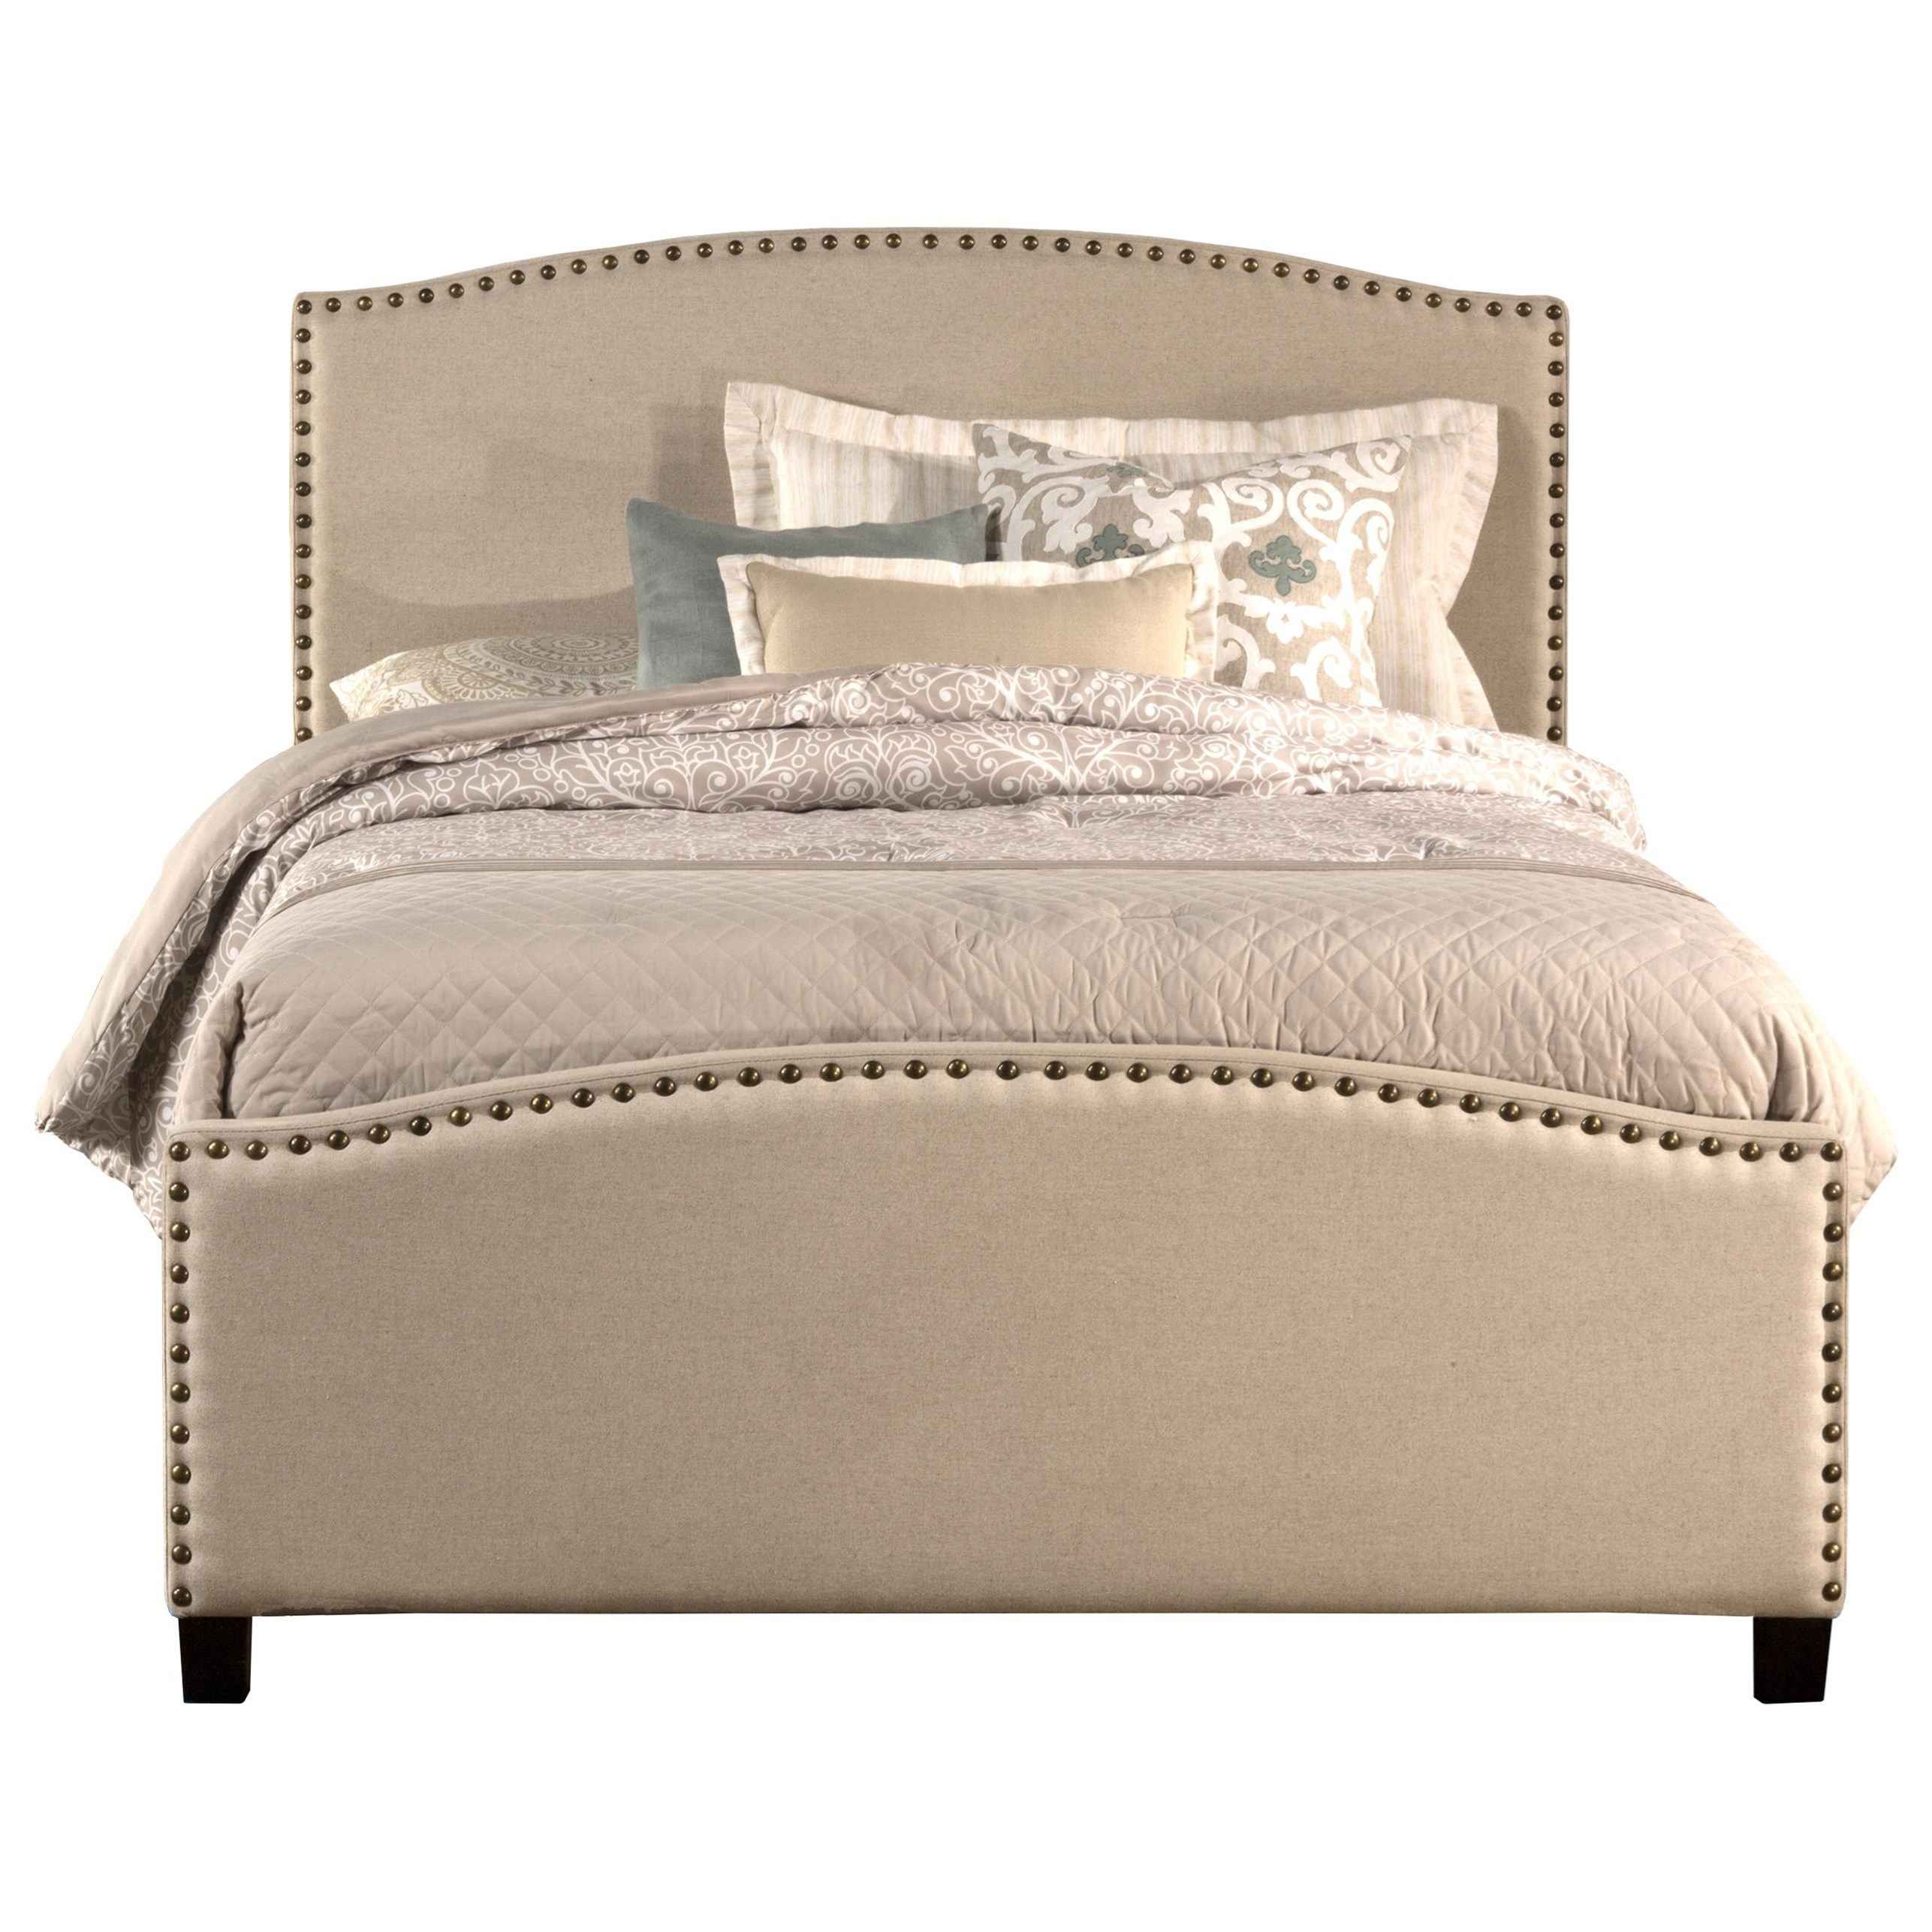 Kerstein Queen Bed Set with Rails by Hillsdale at Mueller Furniture